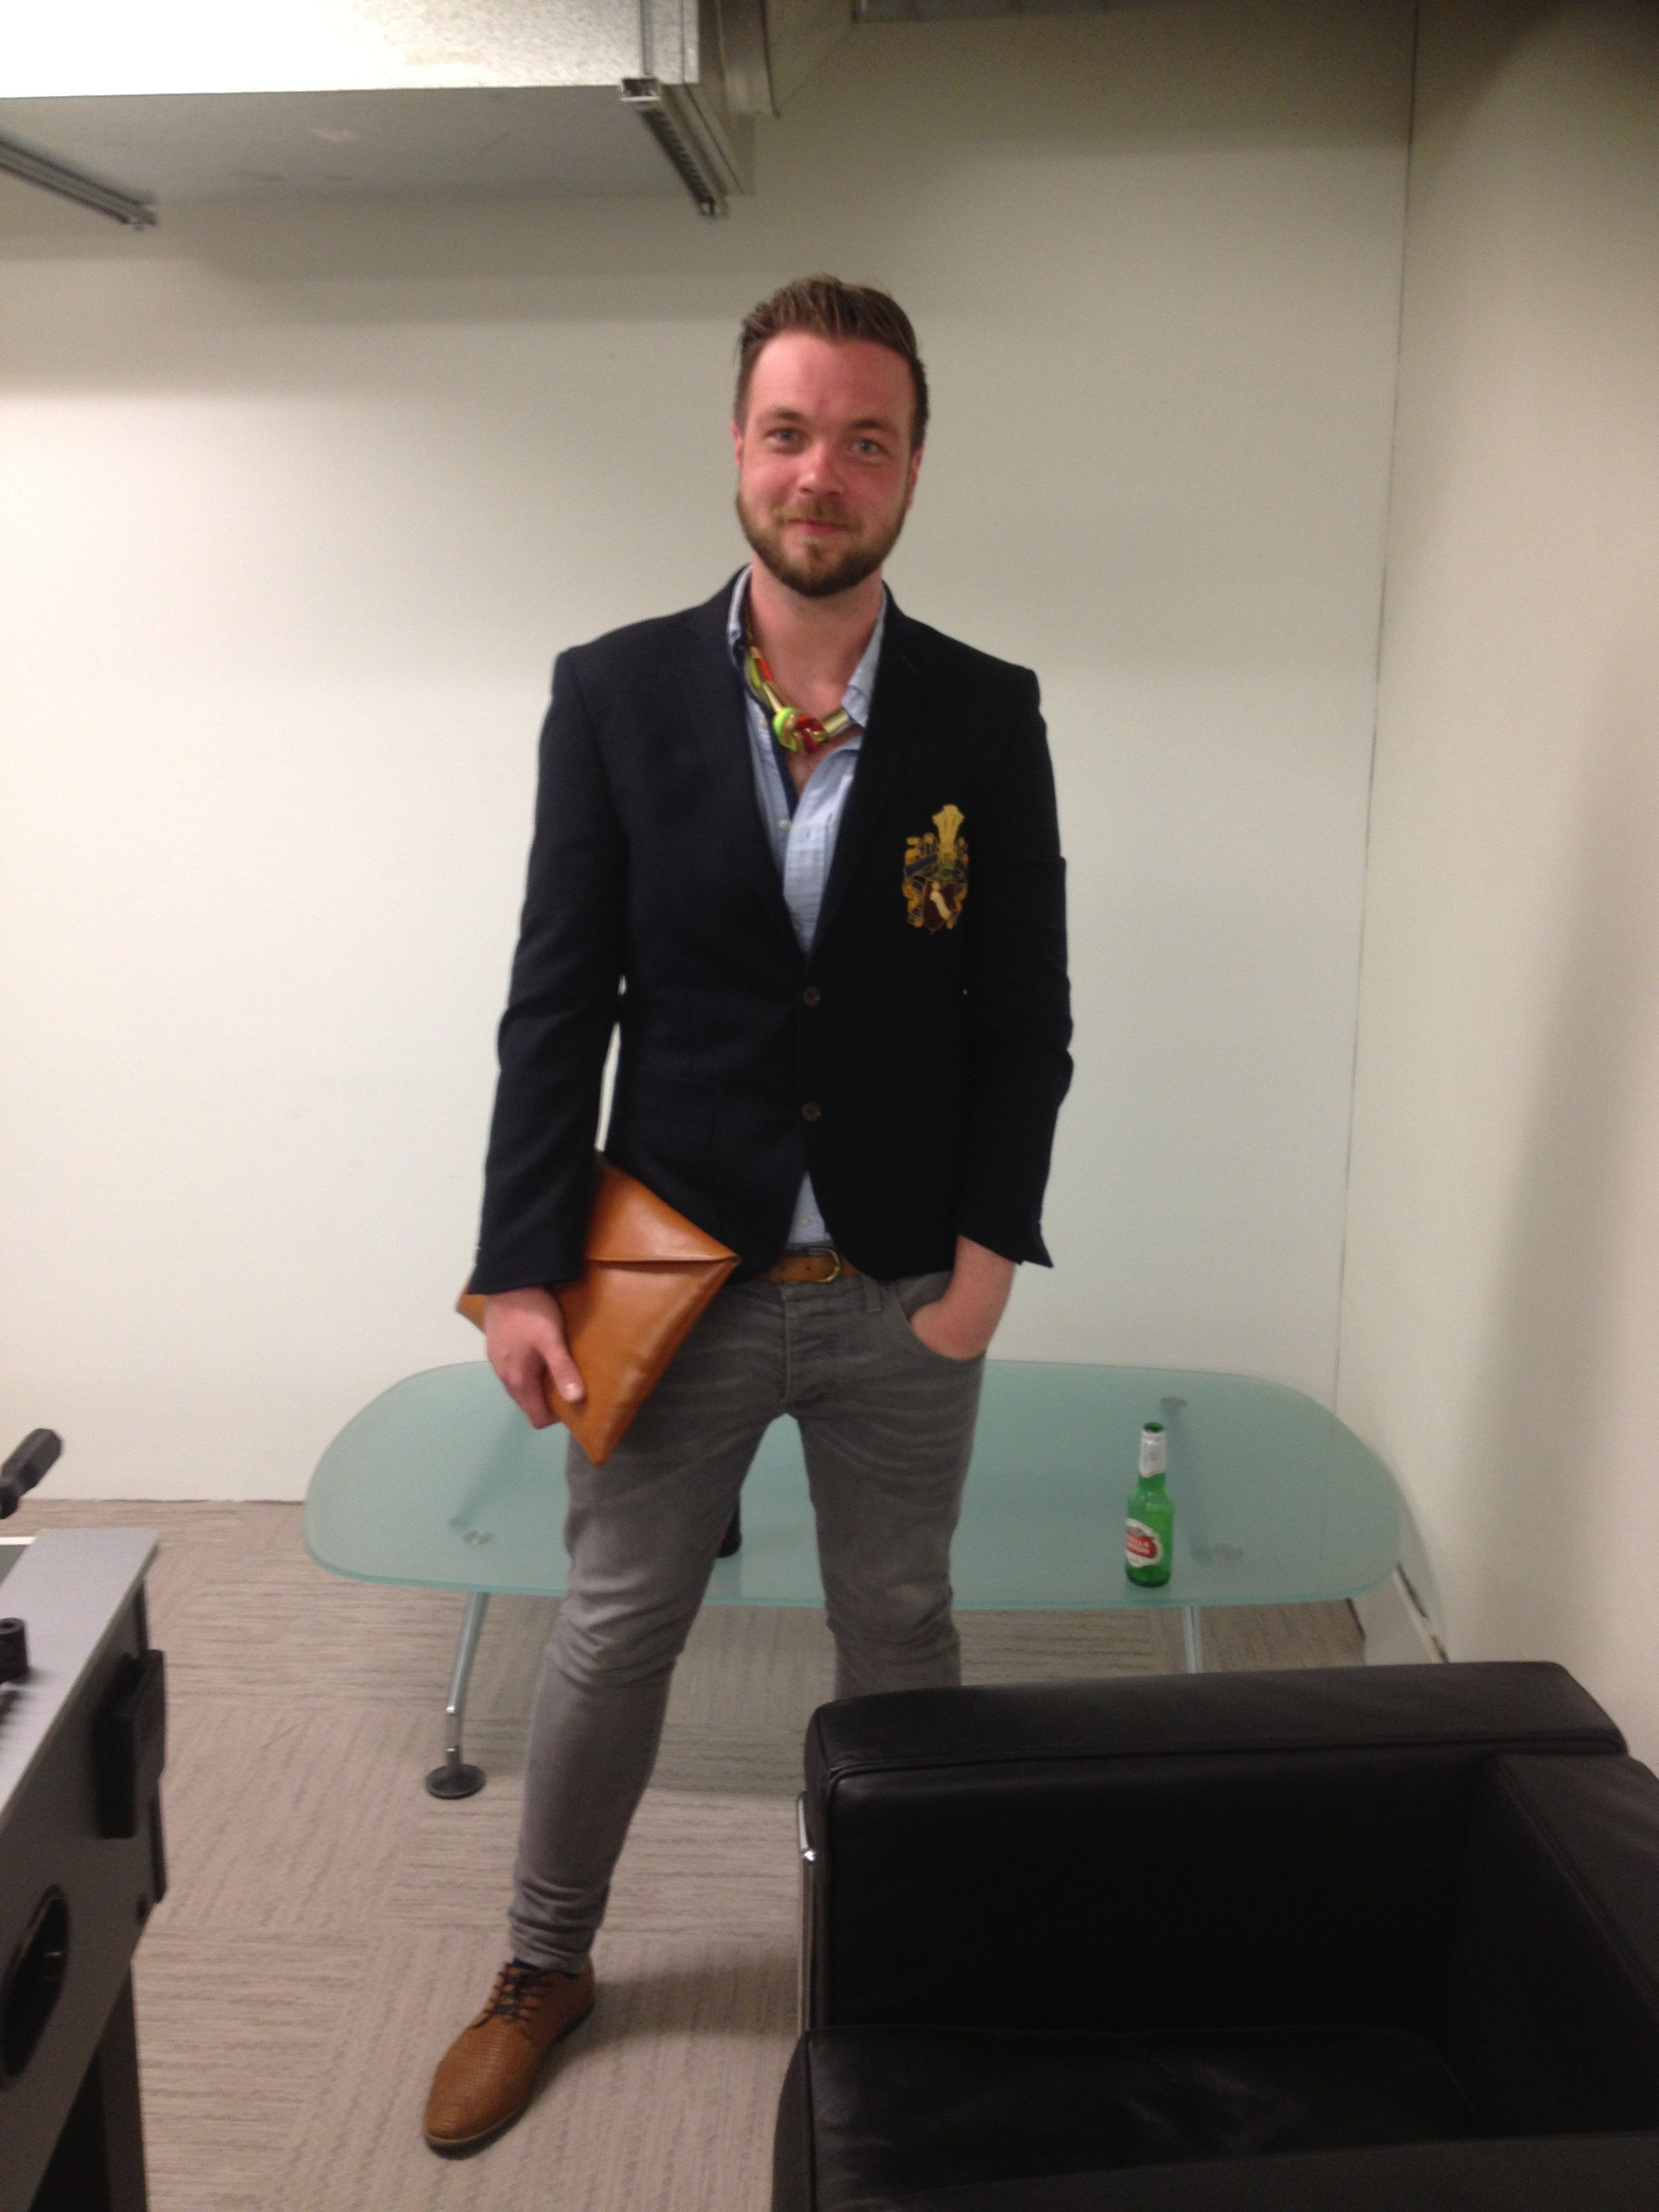 Gregor (Production Executive) looking the part #germanfashion #german #deutschland